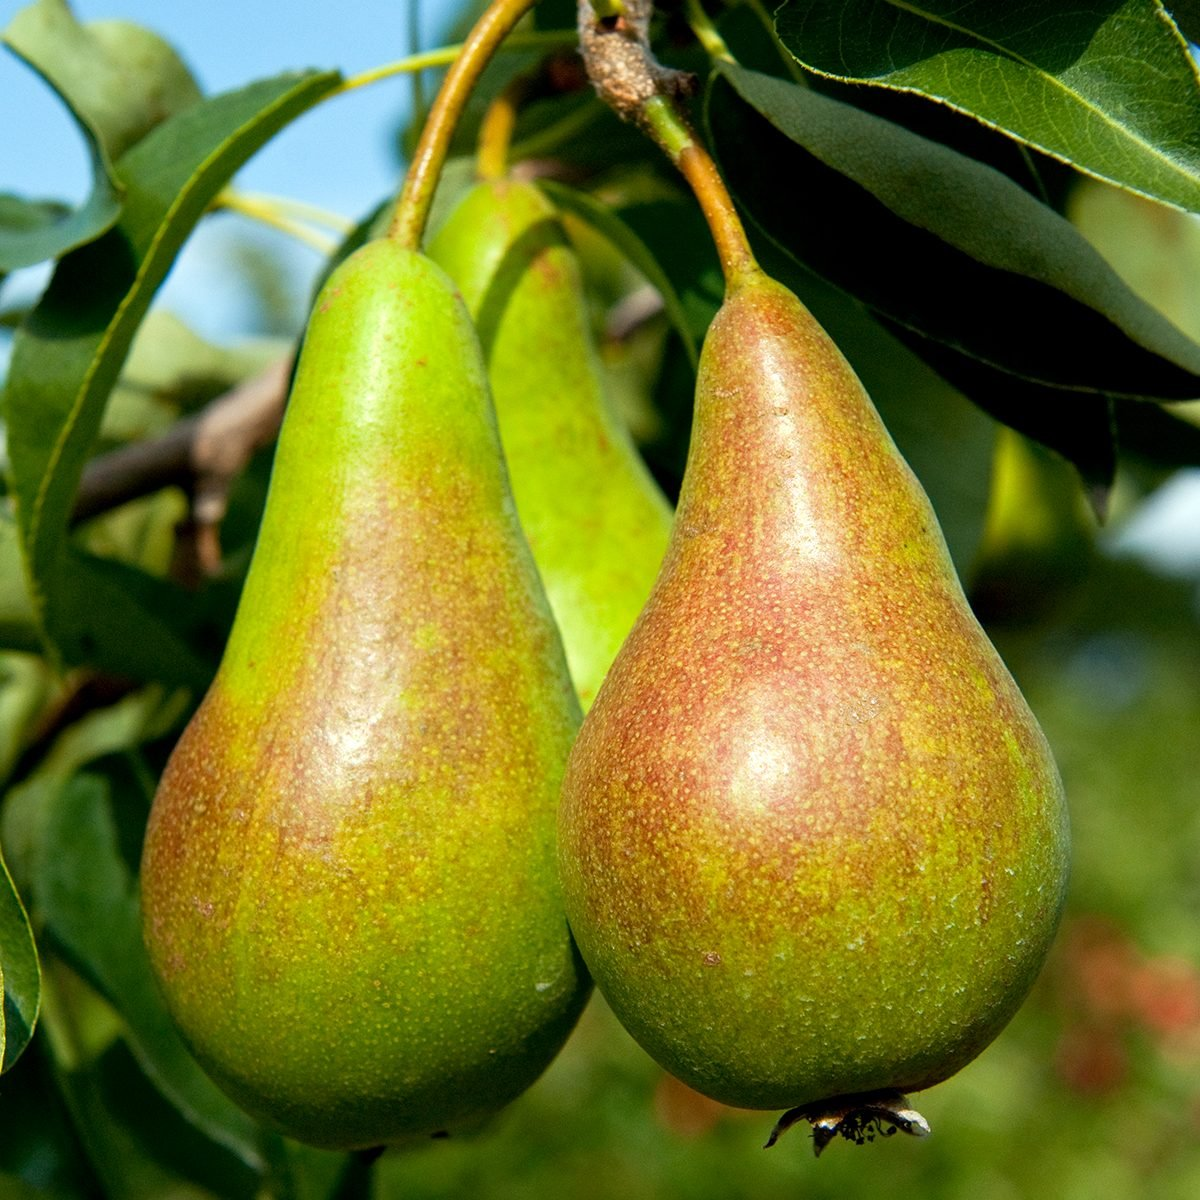 Pear (Pyrus), 'Concorde', ripening fruit hanging from tree